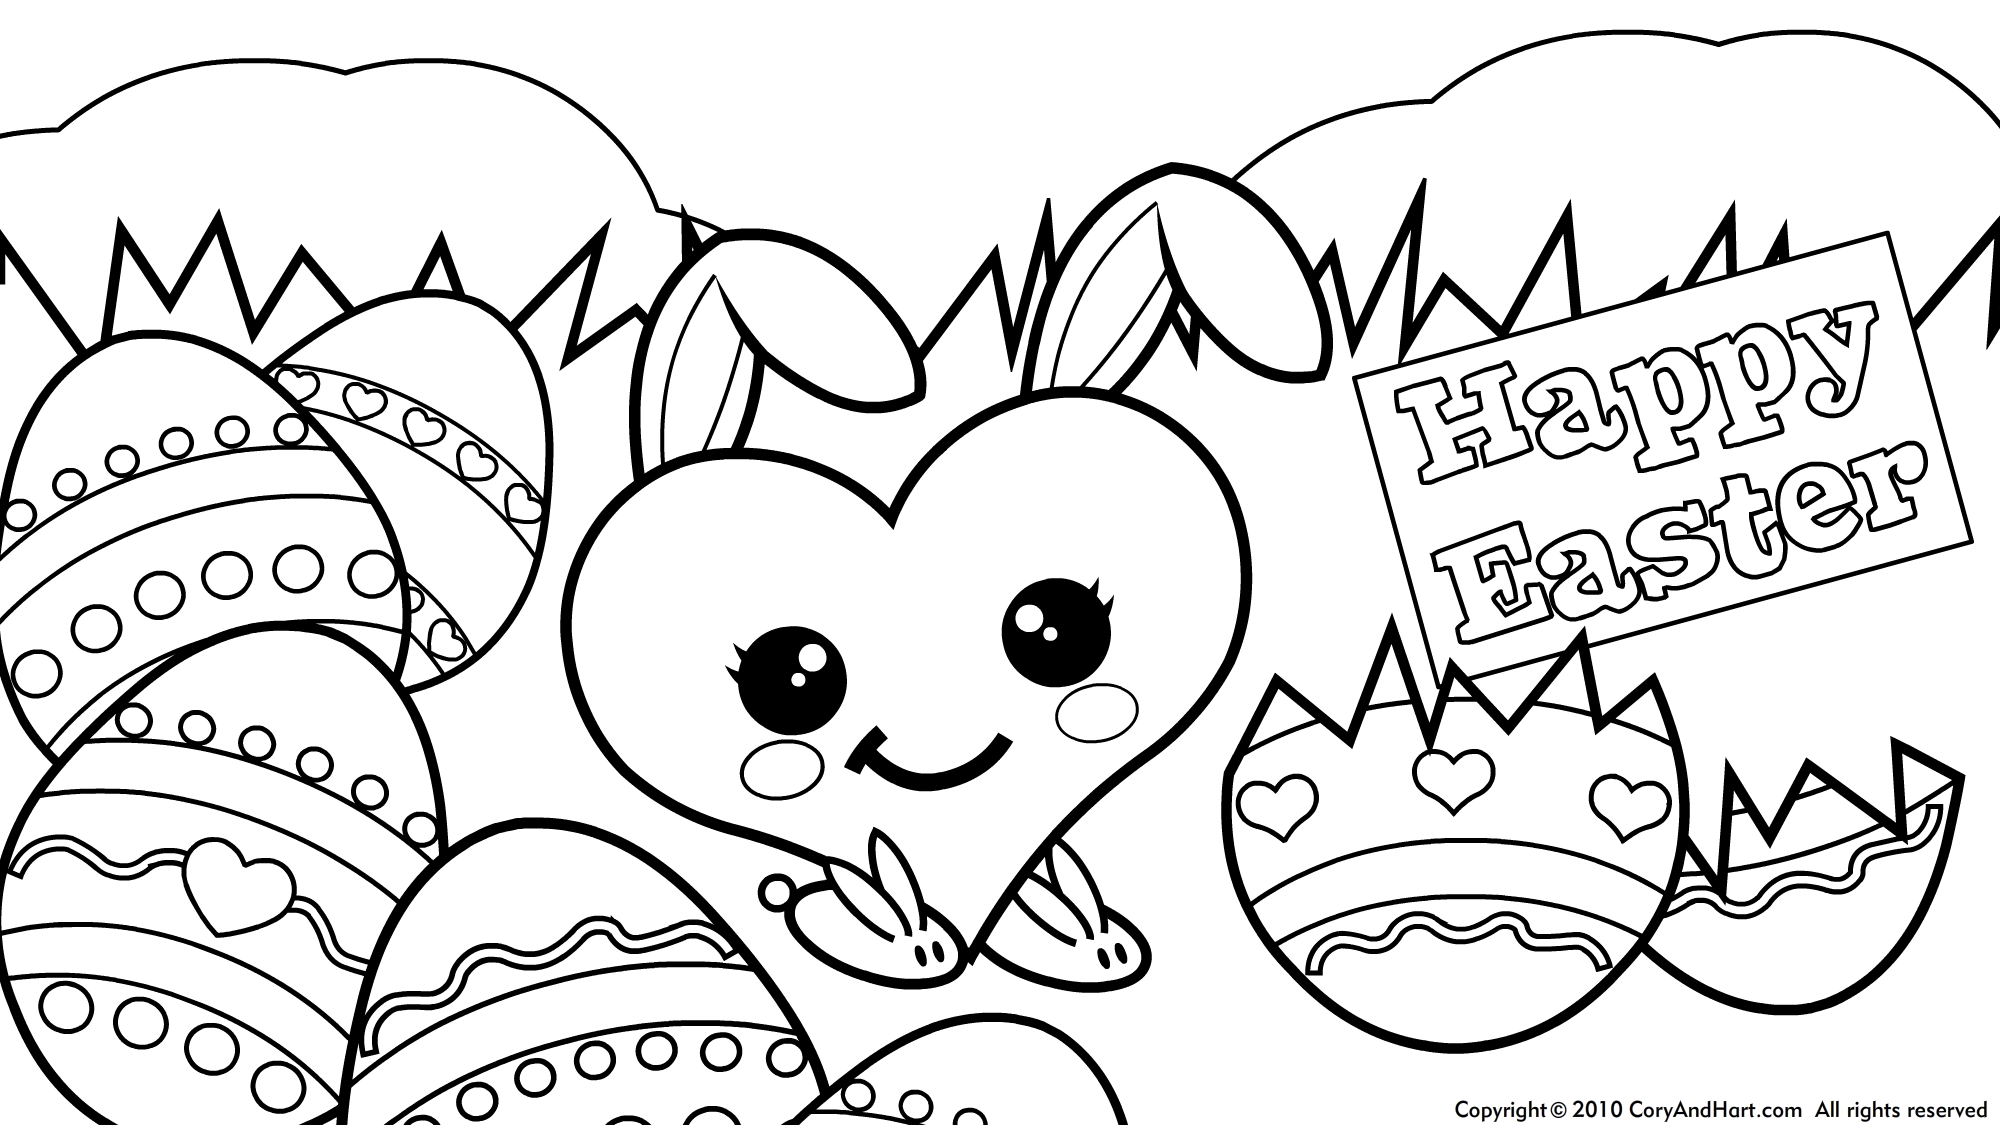 2000x1125 Easter Egg Parade Coloring Page